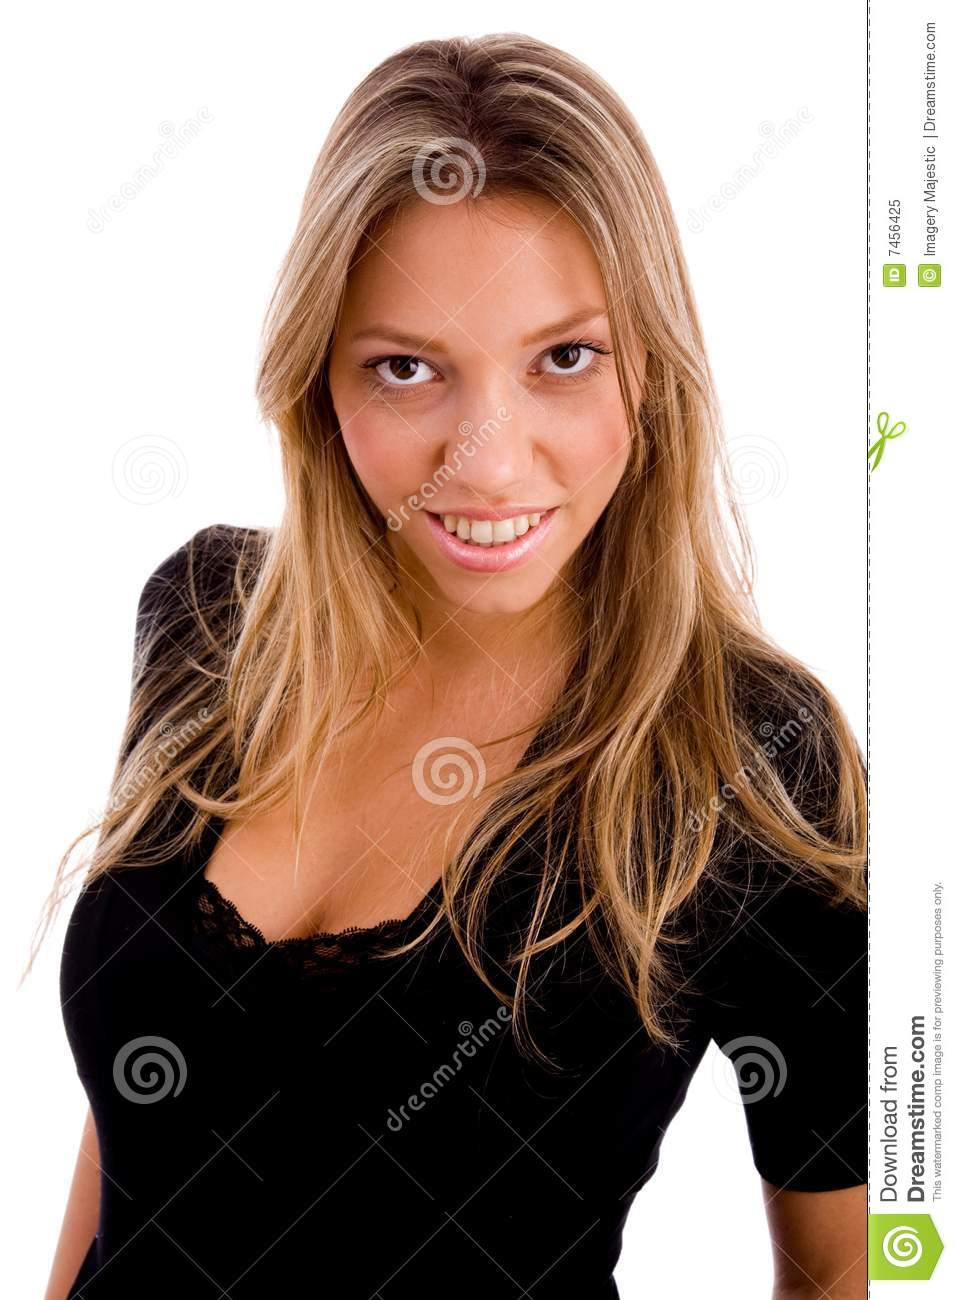 Portrait of smiling woman looking at camera